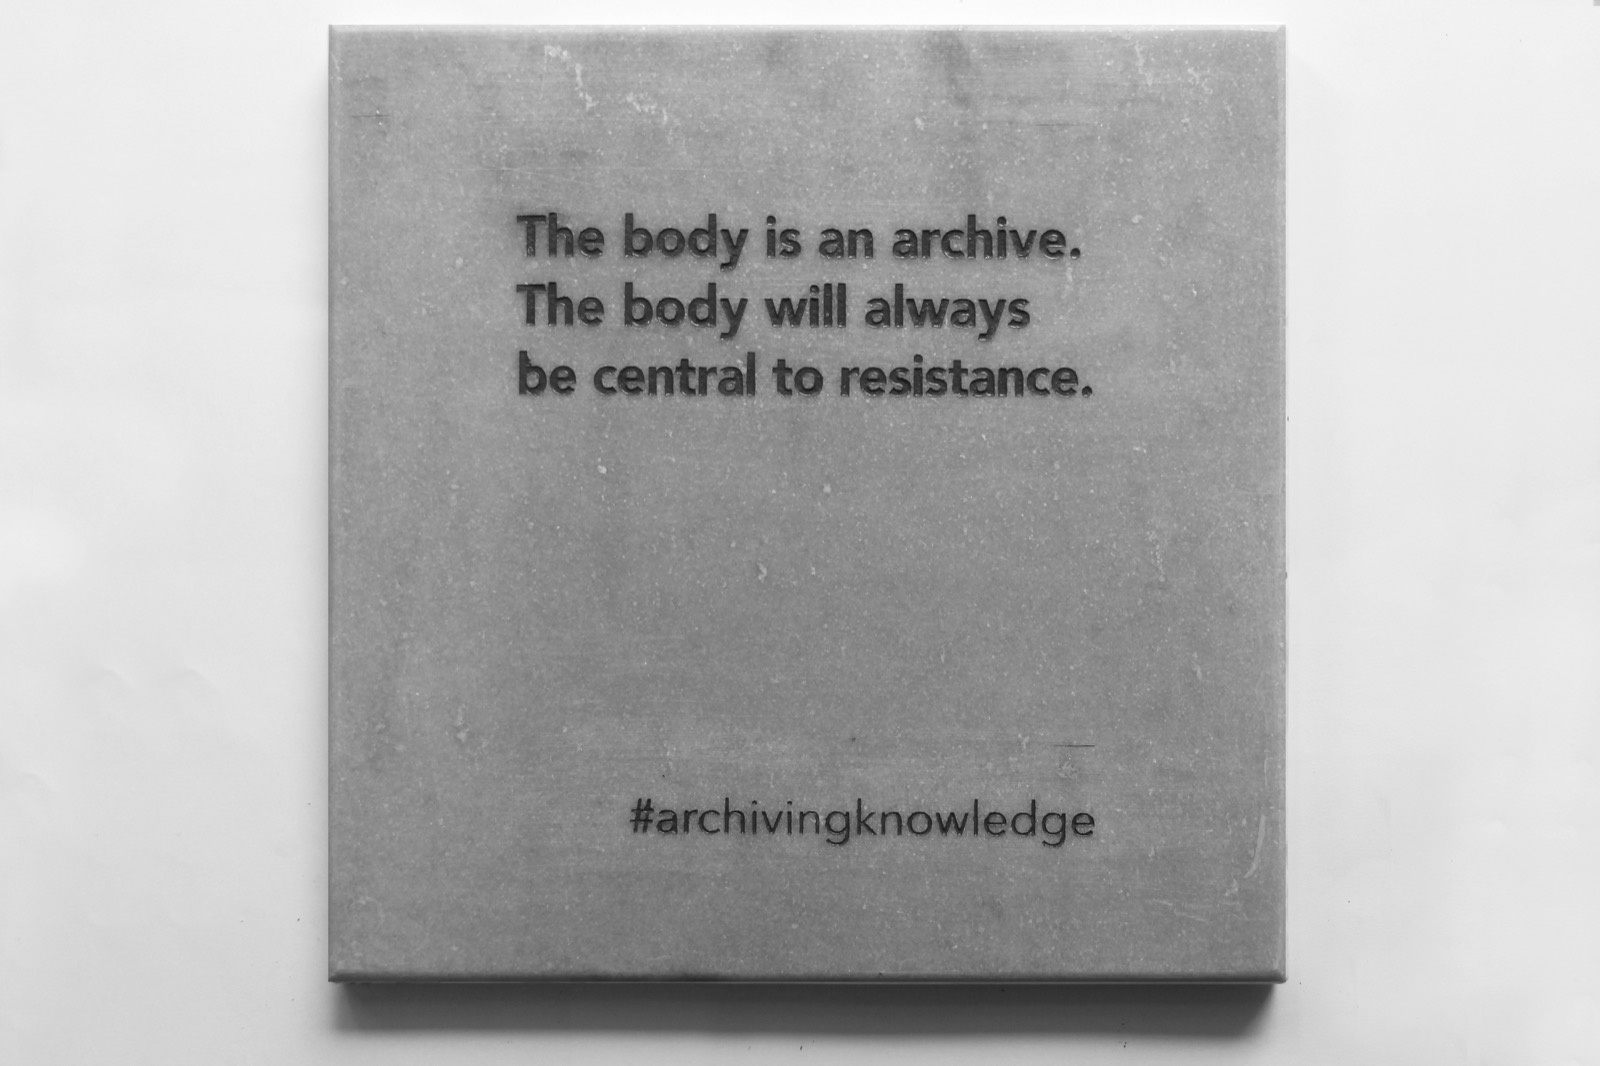 The body is an archive. The body will always be central to resistance, From the series: Archiving Knowledge, hand engraved marble, 2018